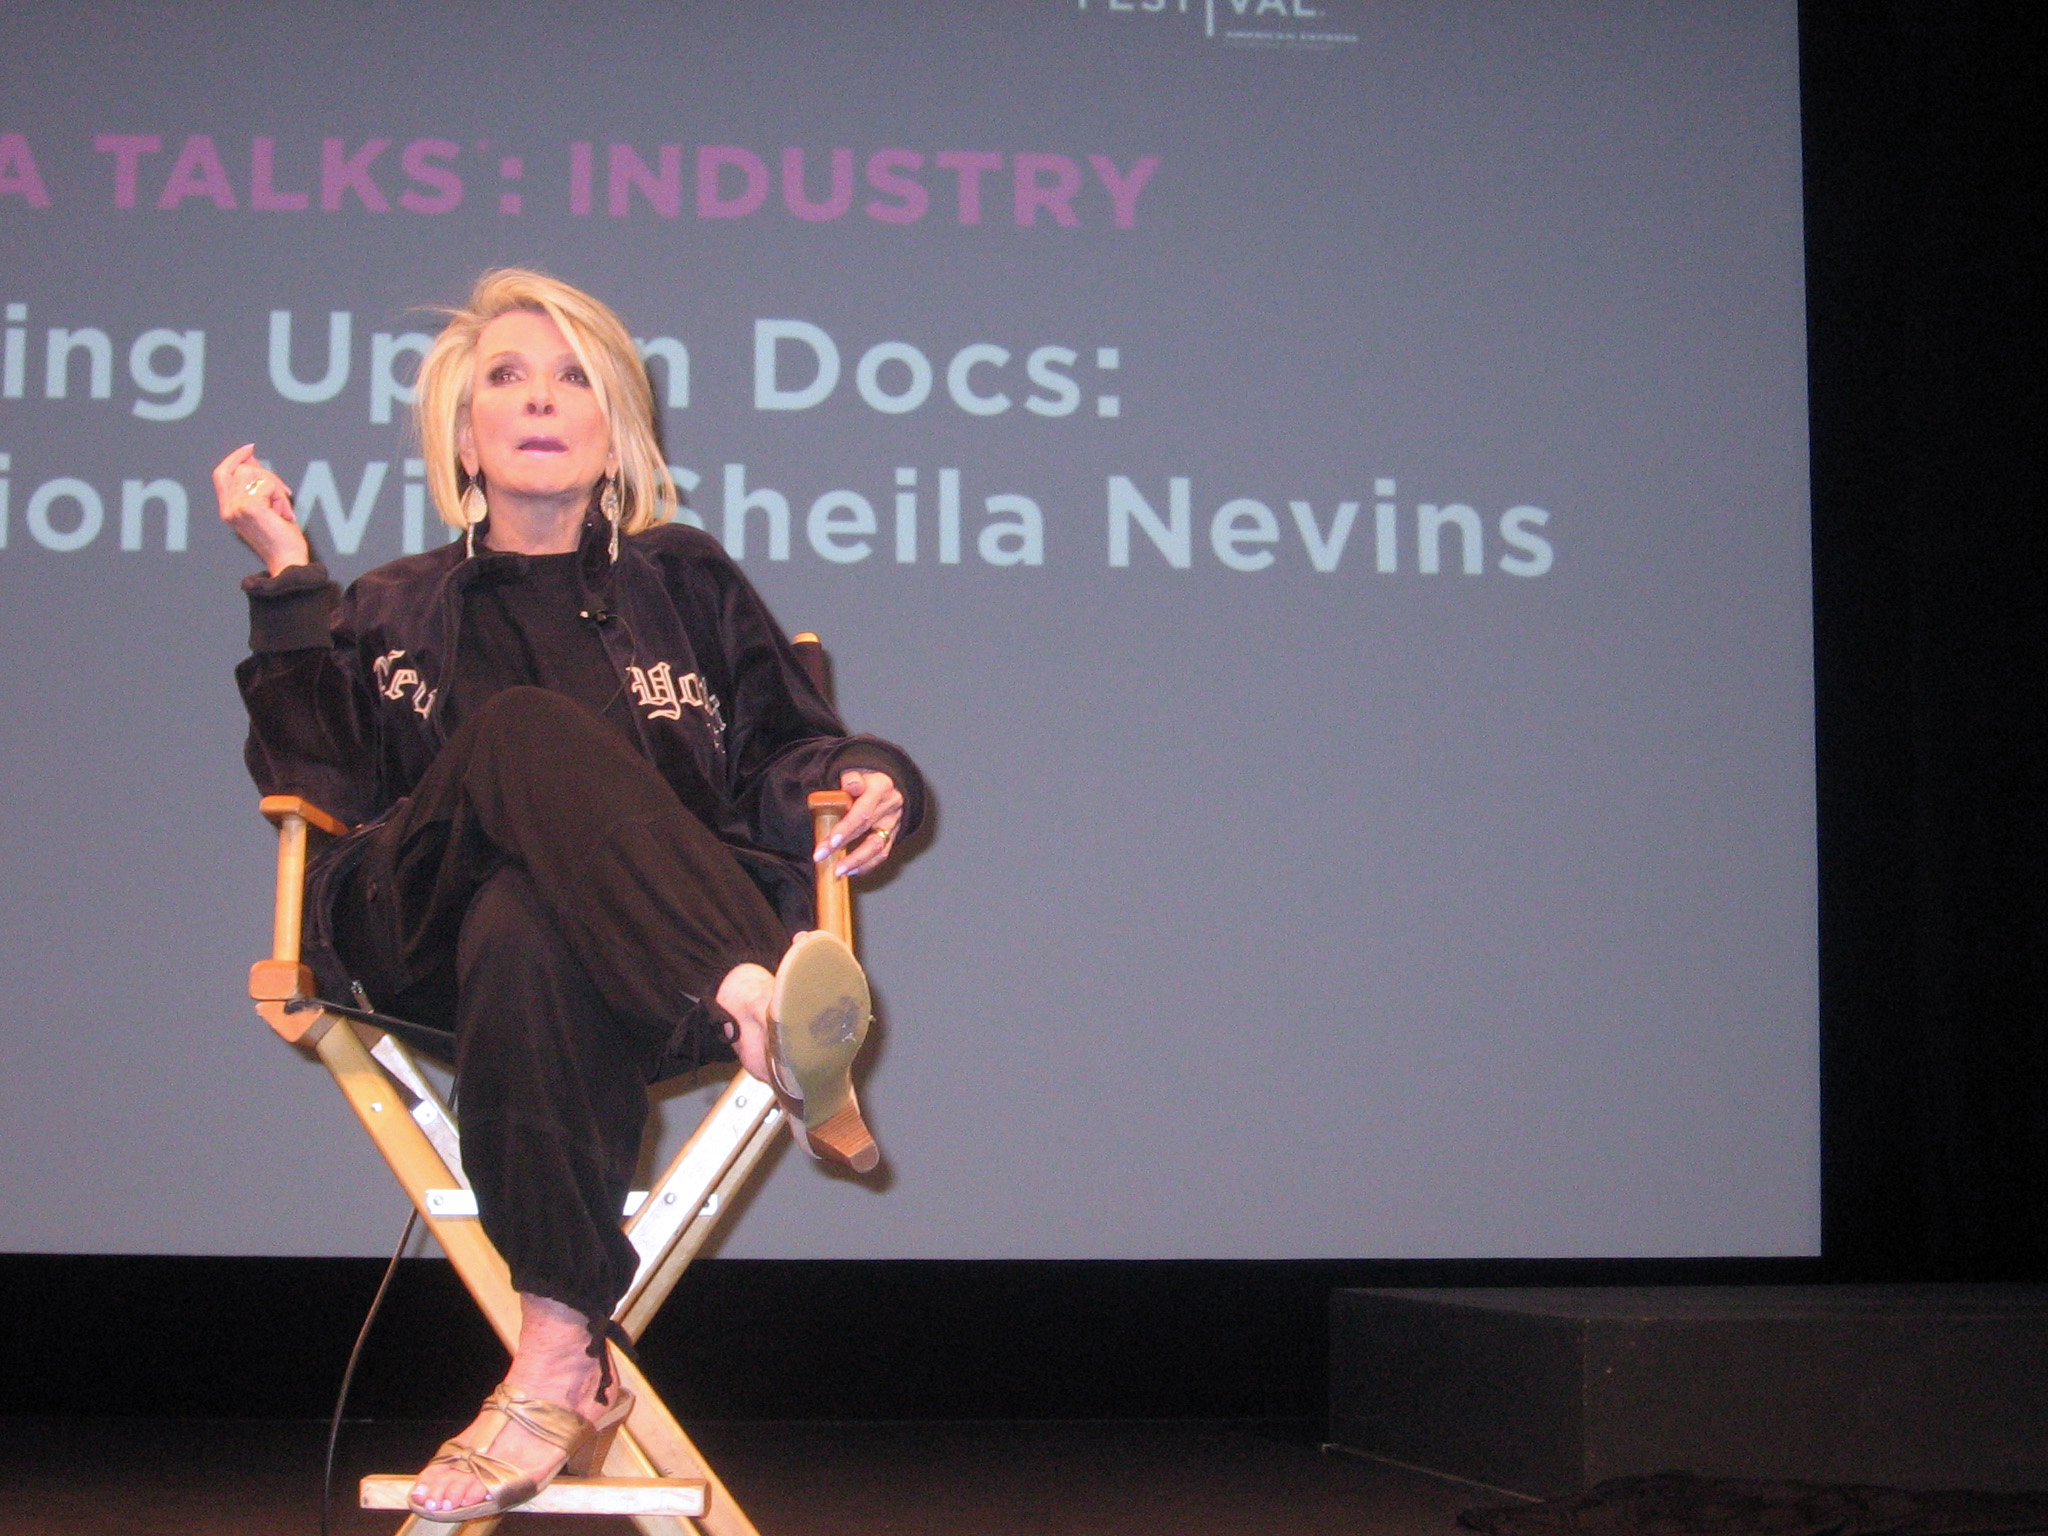 Dominatrix of Docs: Shelia Nevins at Tribeca